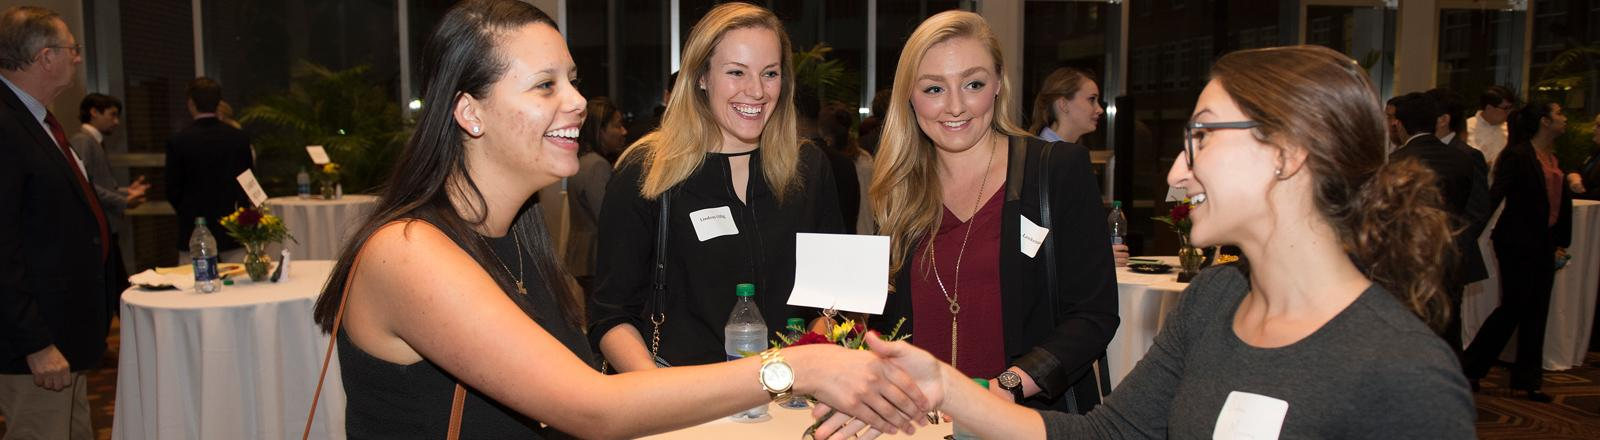 Networking Night - St. Charles Room - College of Business - Loyola University New Orleans